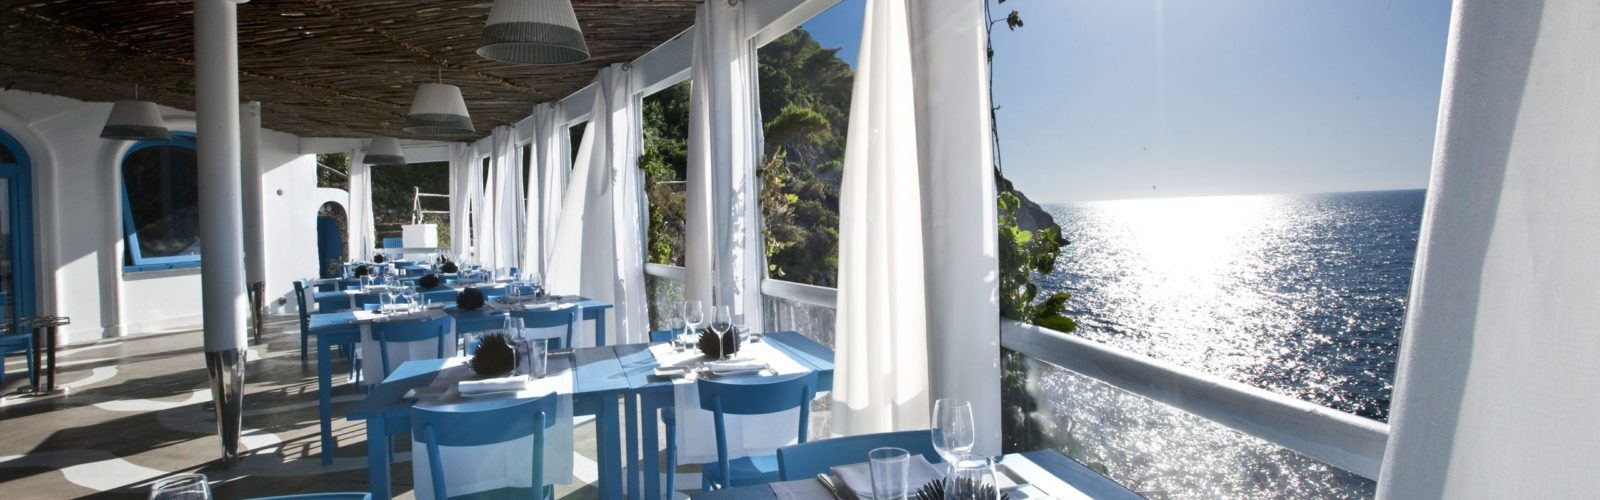 Capri Palace Anacapri Italy capri palace - luxury hotel in capri | jacada travel